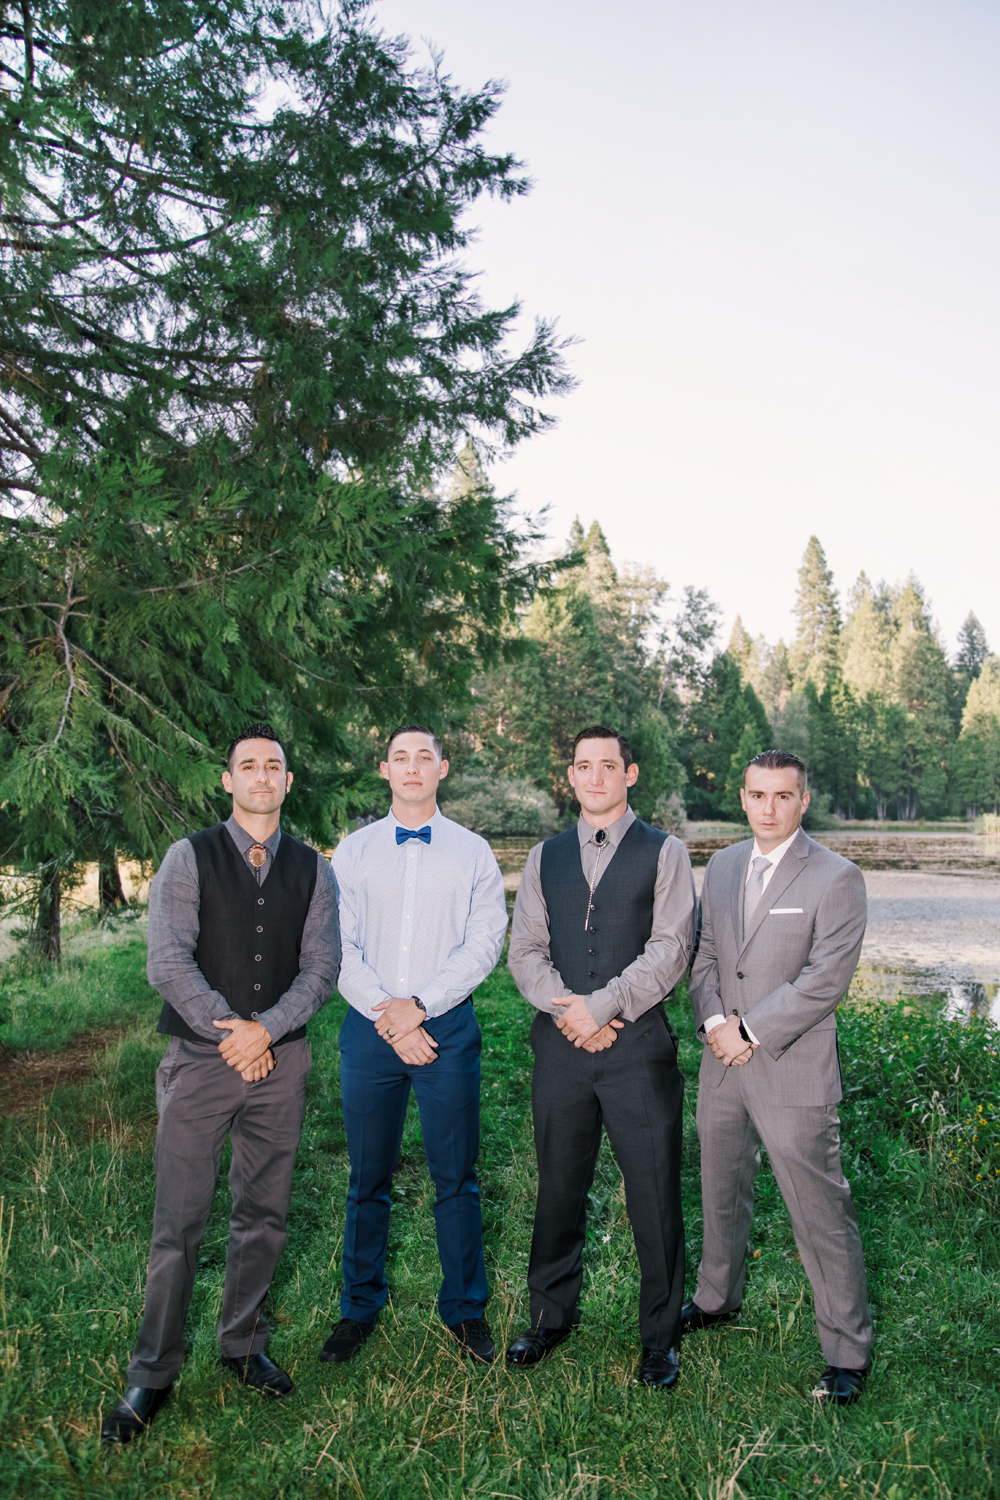 Rustic-Forest-Country-Wedding-Chico-CA48.jpg